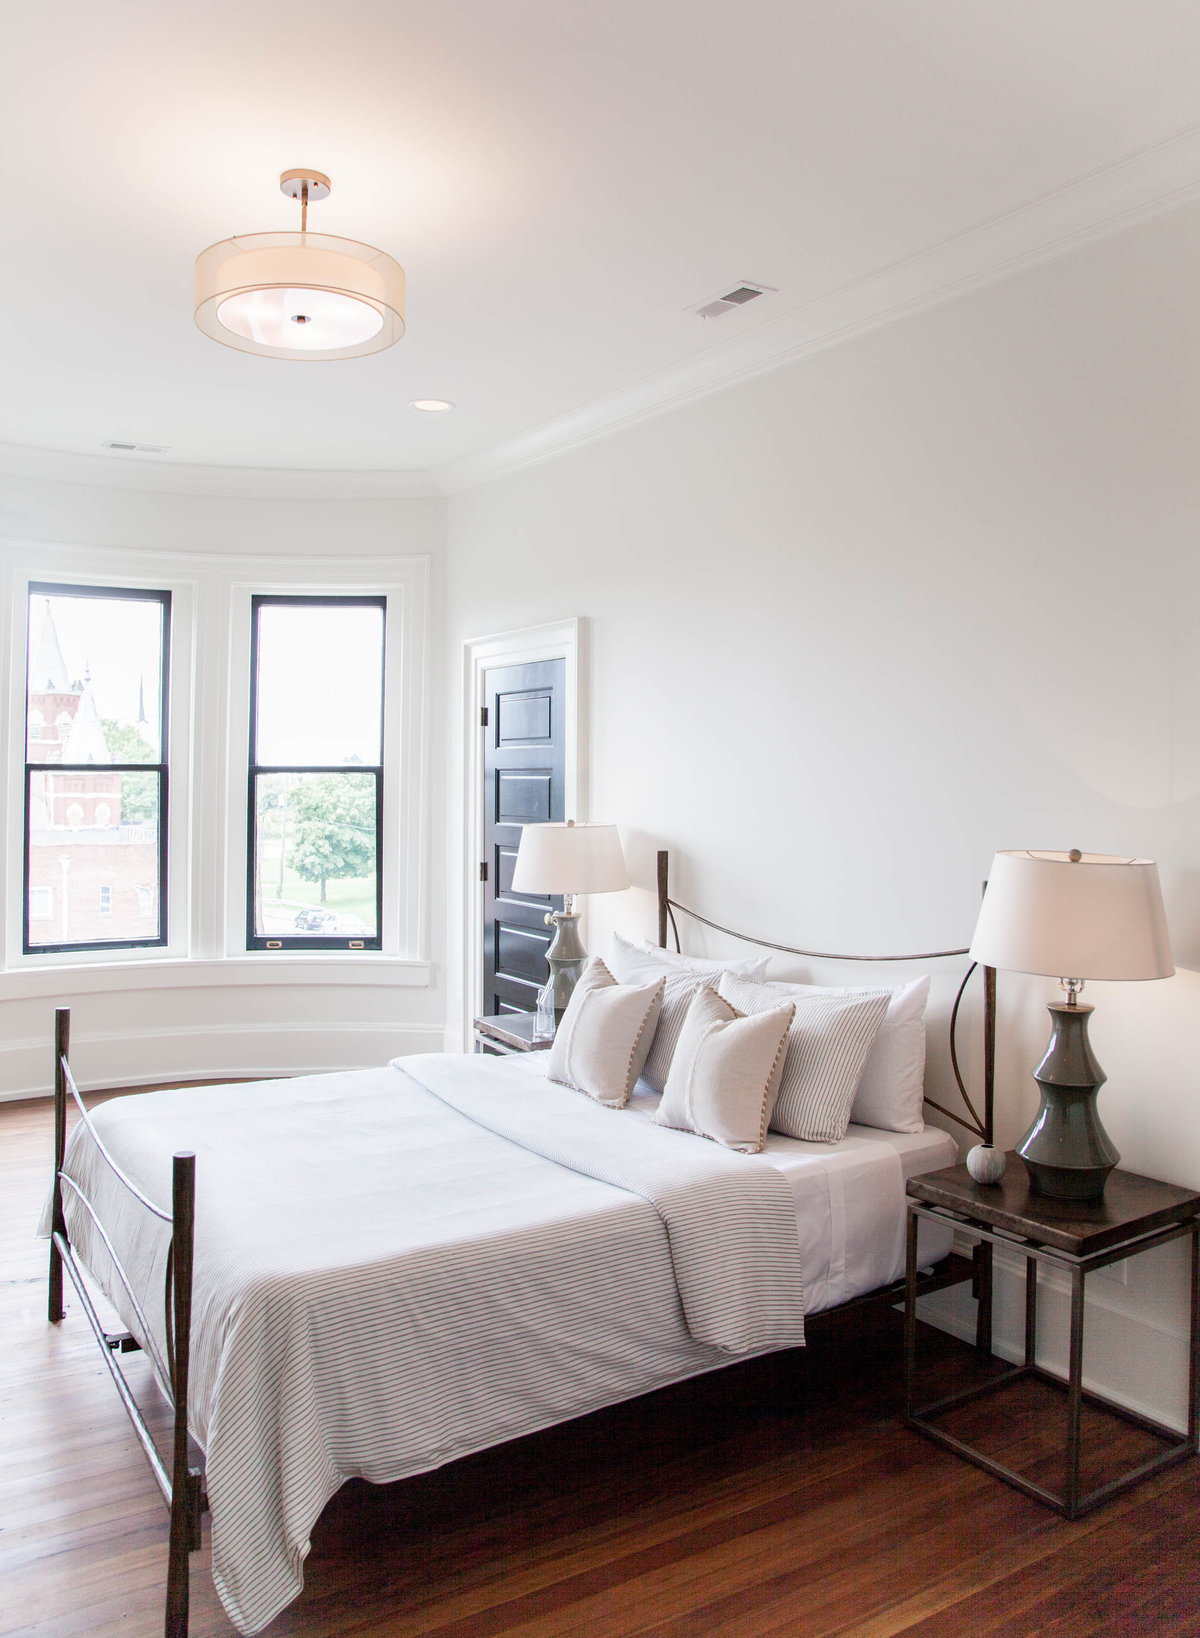 12th-Table-NASHVILLE-HOME-STAGING-Residential-Staging-INTERIOR DESIGN-Conley-House-Behind-the-Scenes-Russell-EastNashville-Renovation-43